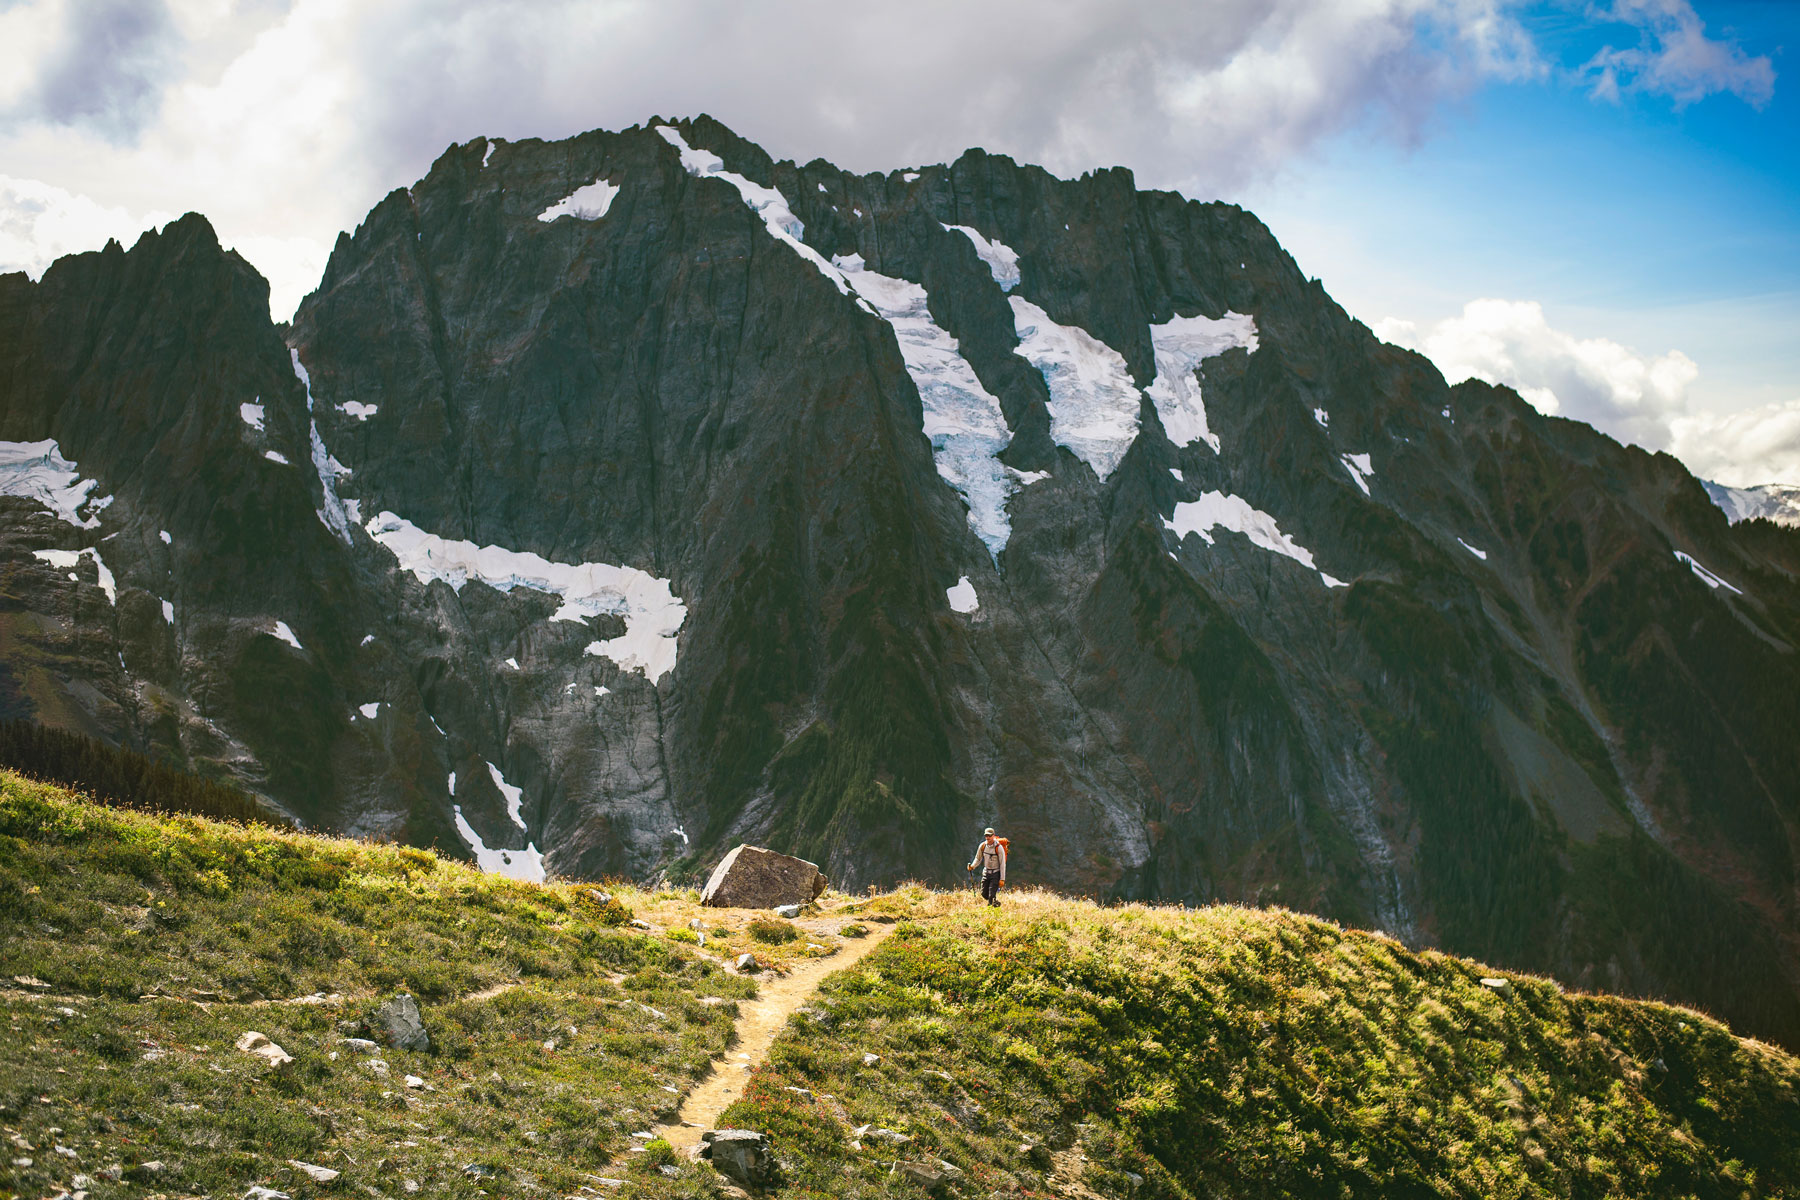 backpacker hiking on trail in North Cascades National Park